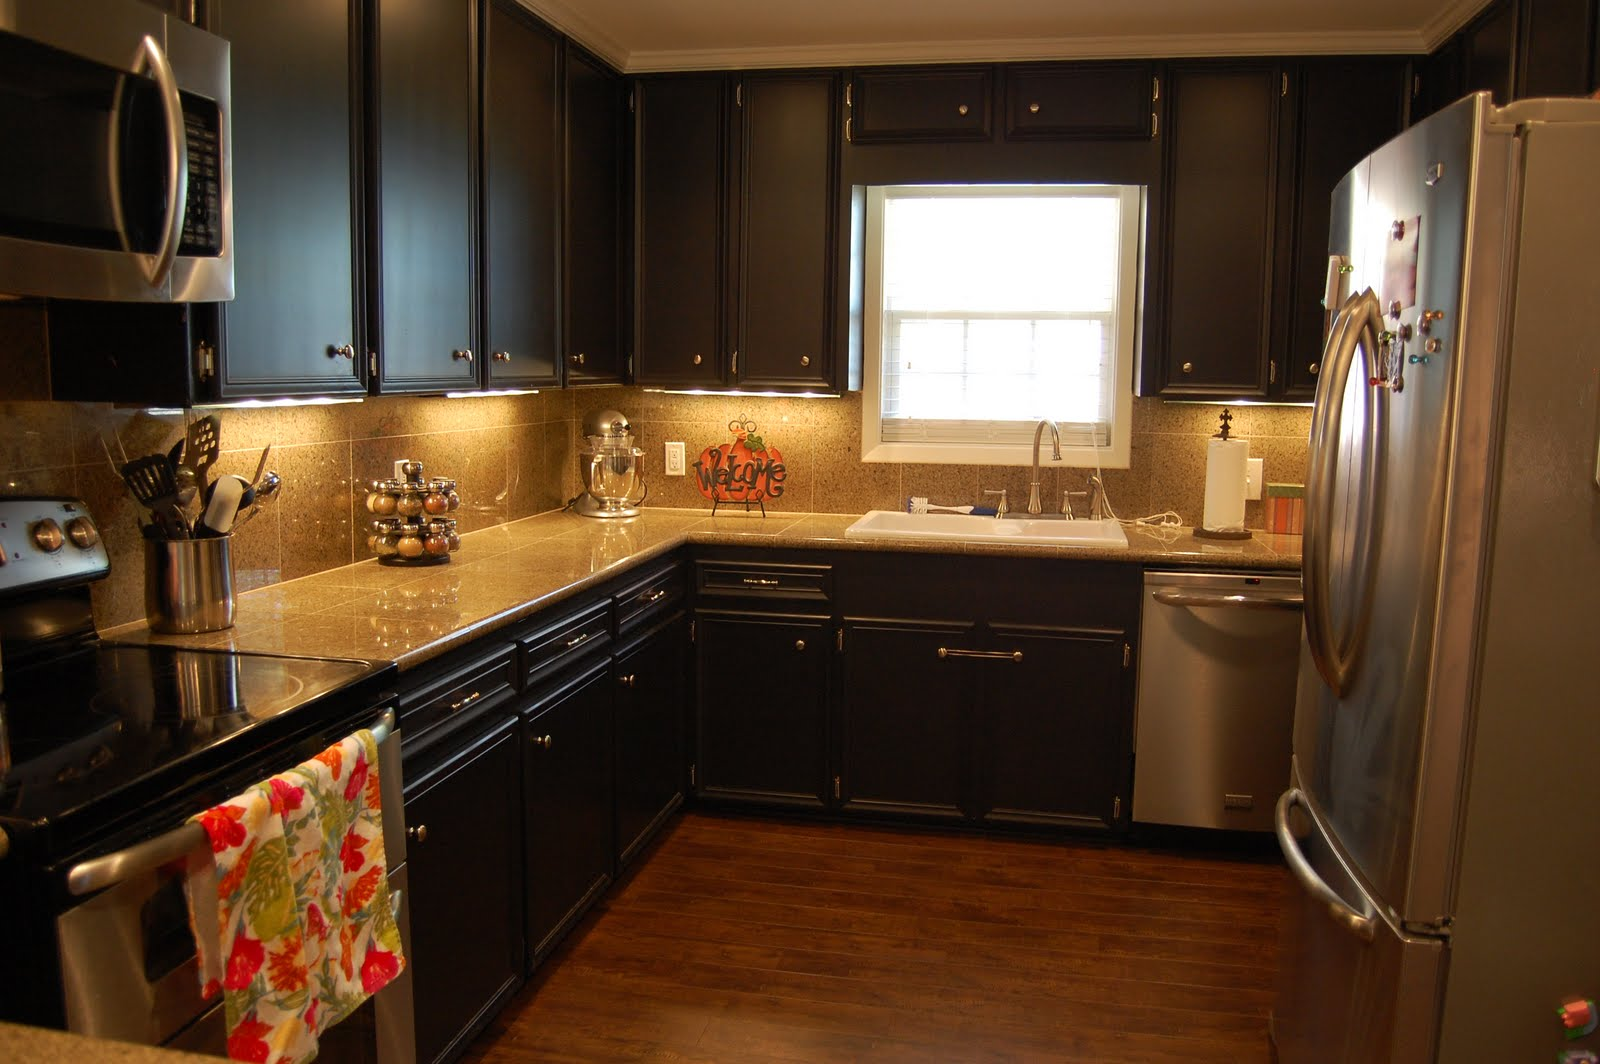 These are the same cabinets! We painted them SW Black Magic and added